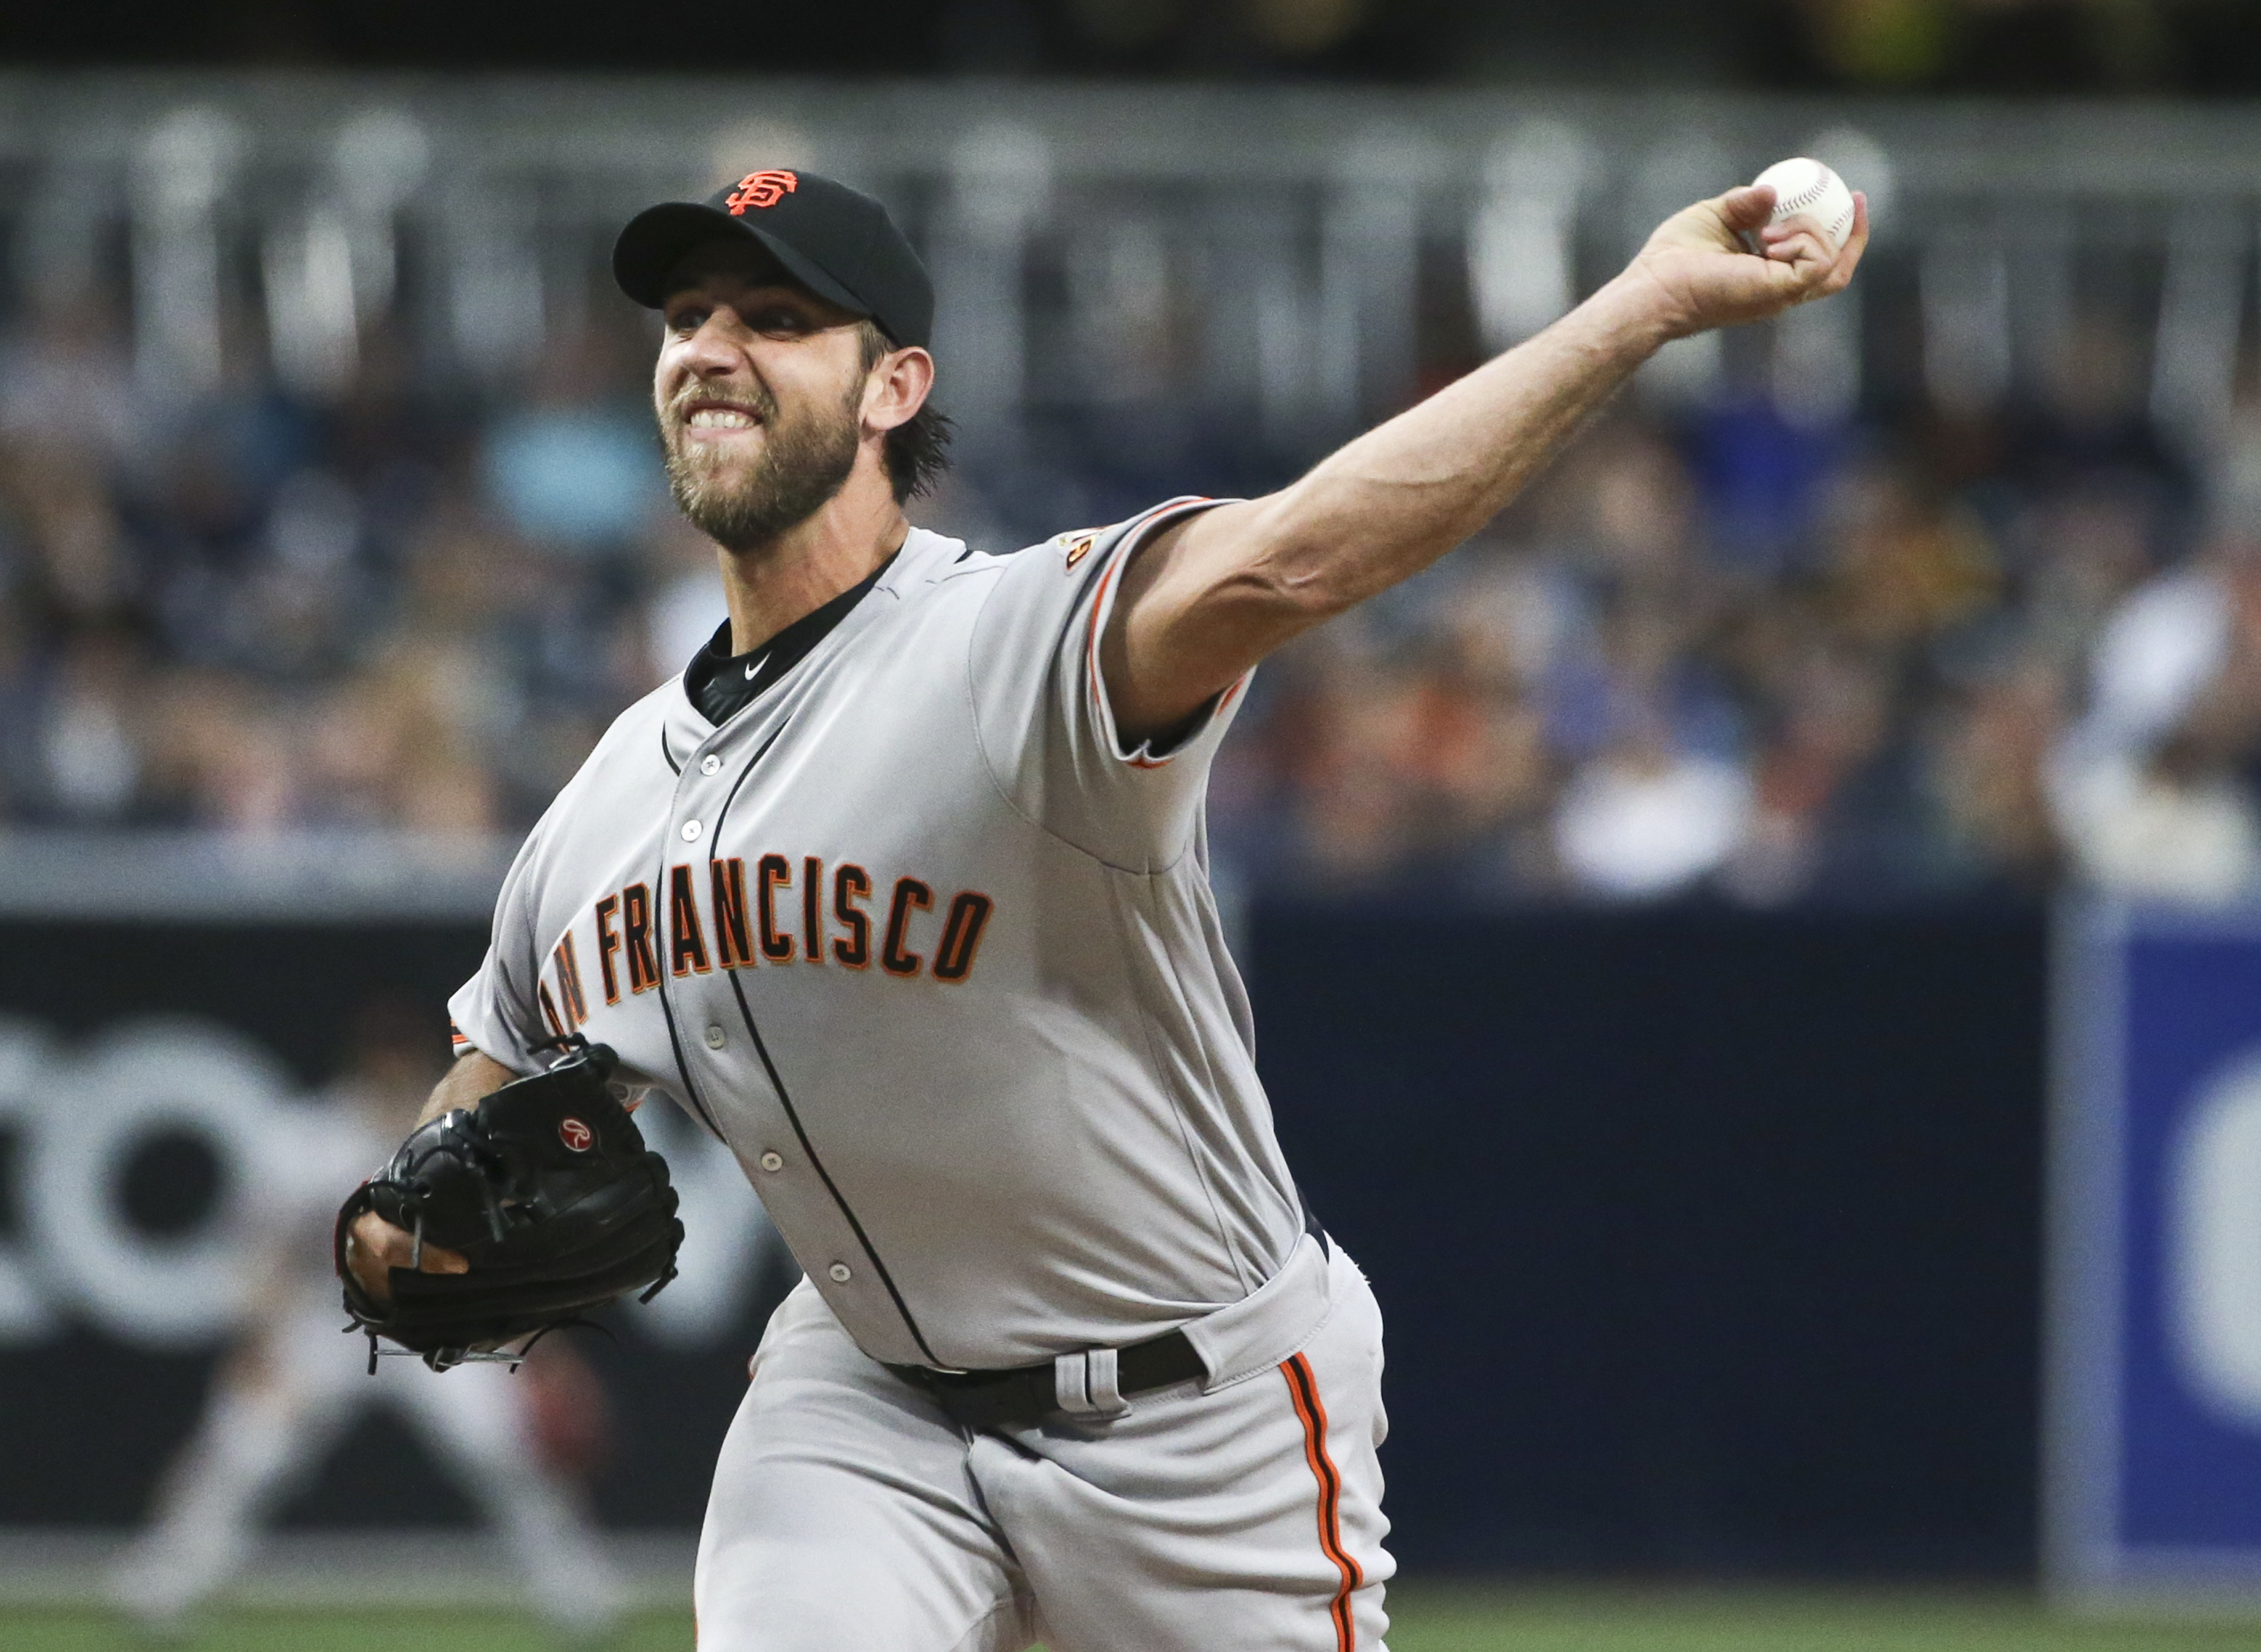 San Francisco Giants starting pitcher Madison Bumgarner throws against the San Diego Padres during the first inning of baseball game Tuesday, May 17, 2016, in San Diego. (AP Photo/Lenny Ignelzi)